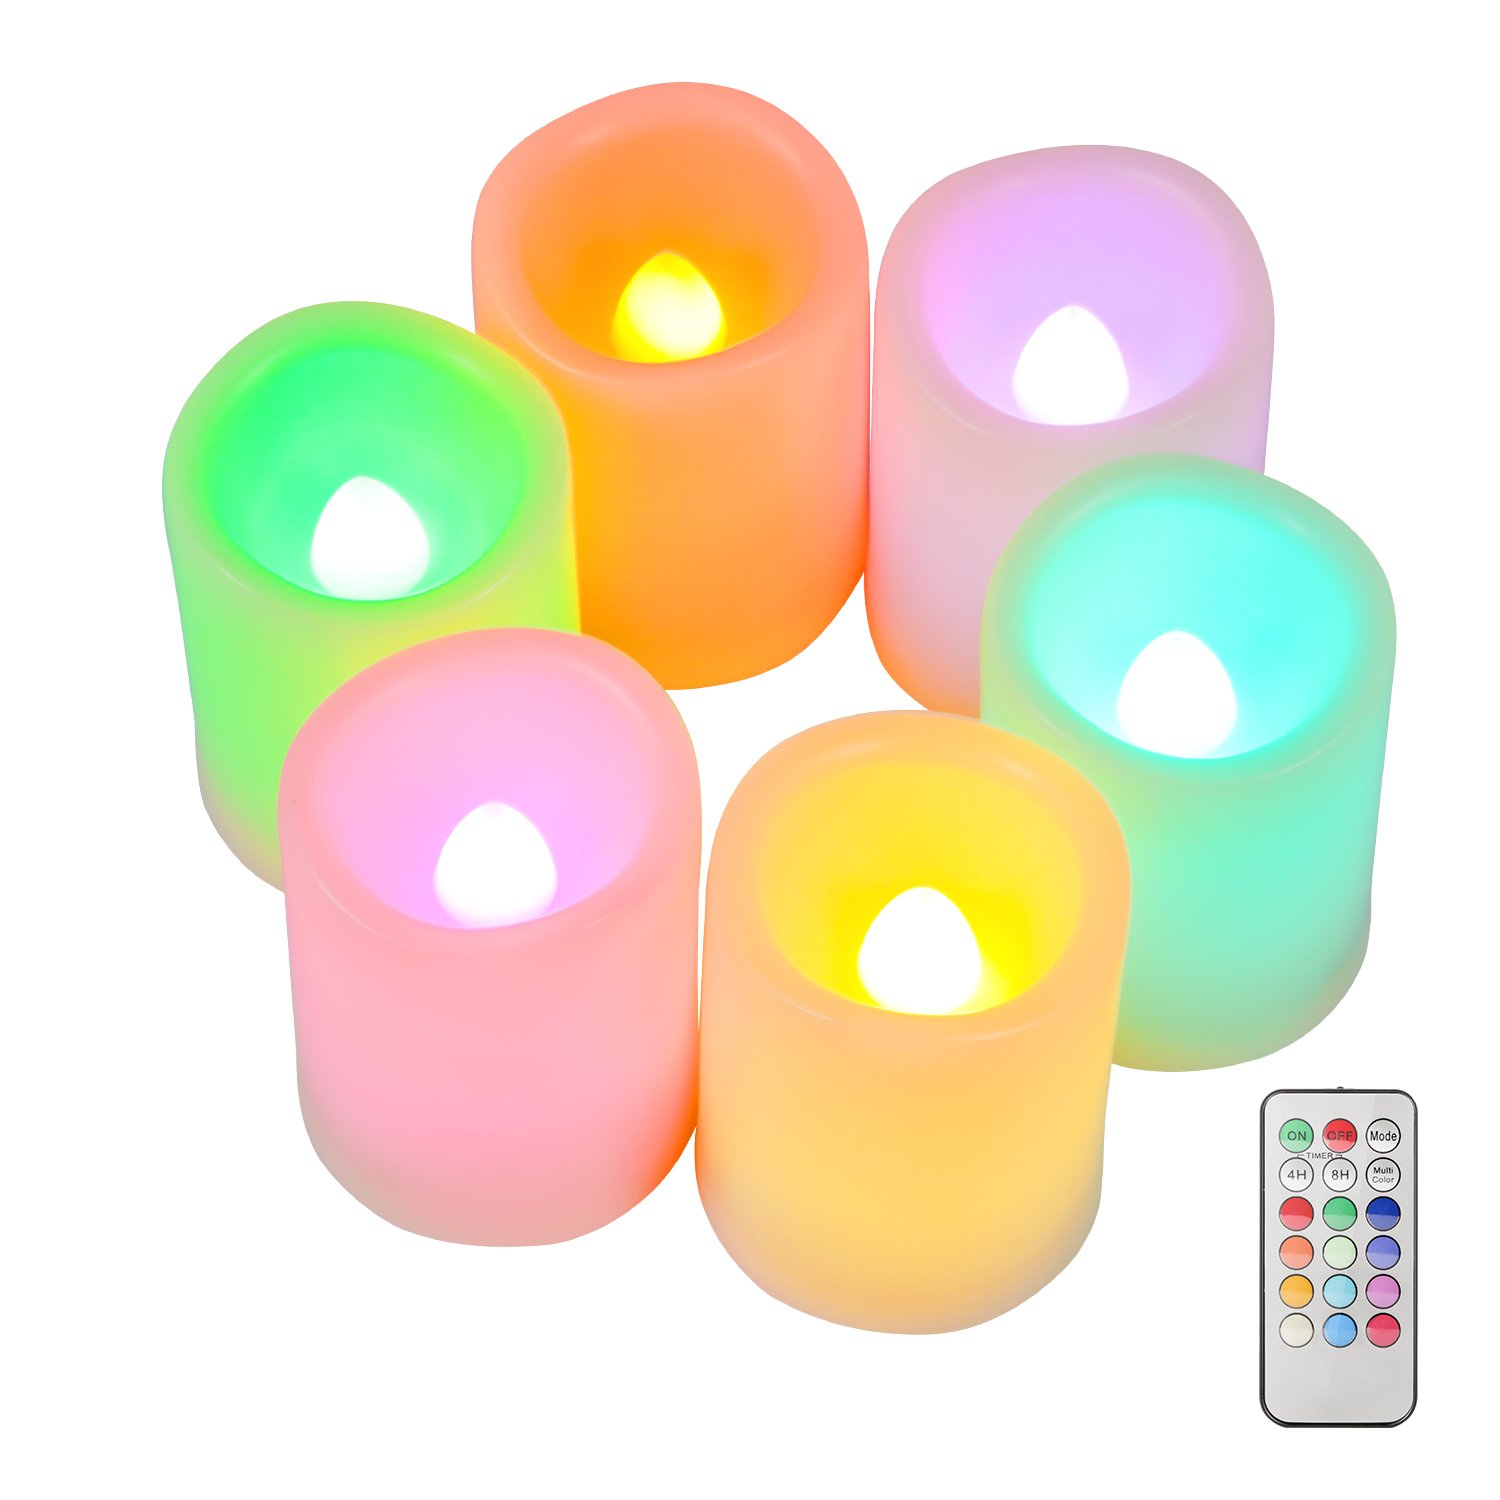 Kohree Set of 6 Flameless LED Color Changing Votive Candles with Remote and Timer, Battery-Included, Melted Edge, Multiple Colors HP101